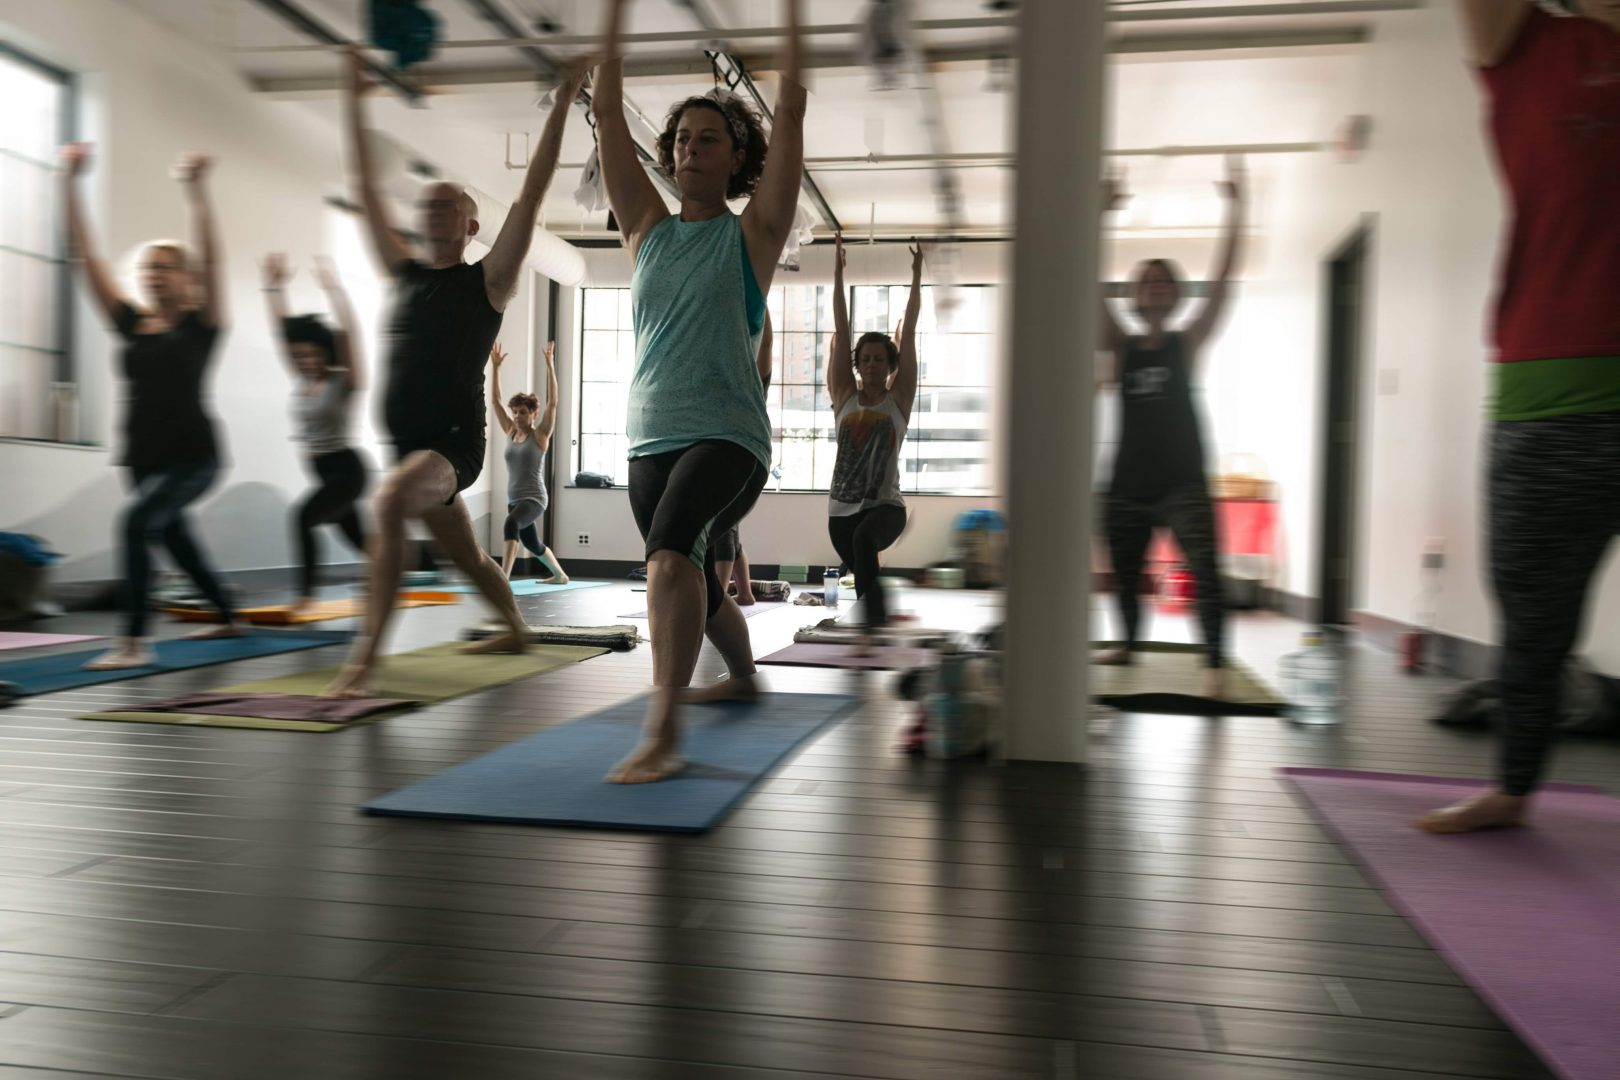 UP-Yoga-Class-in-Silver-Spring-blurred (2)